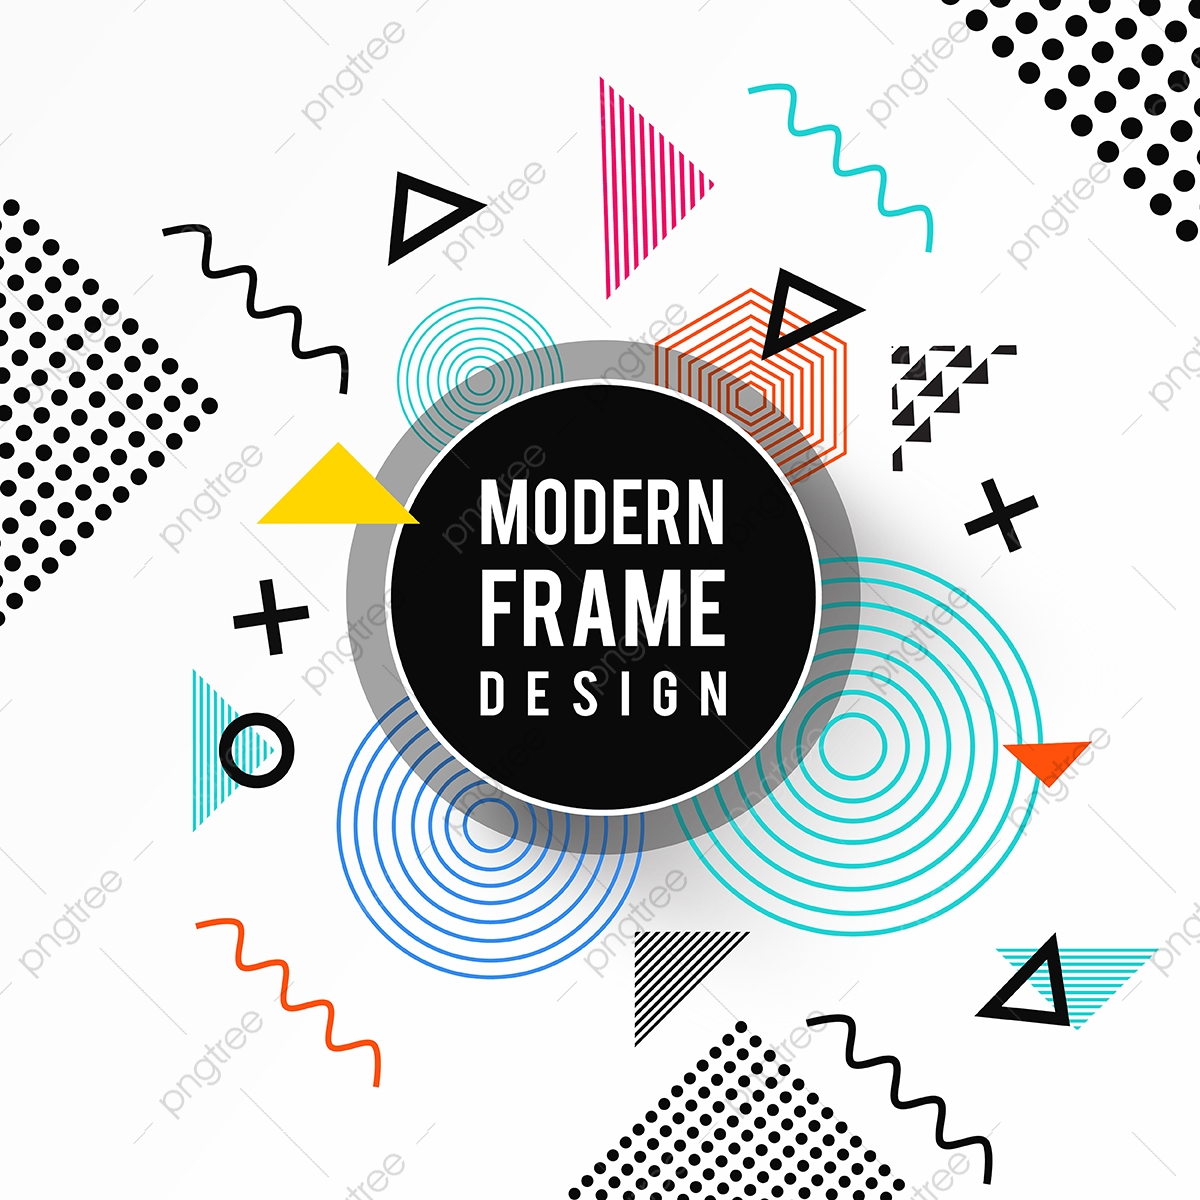 modern frame png images vector and psd files free download on pngtree https pngtree com freepng colorful vector modern frame design 3603547 html